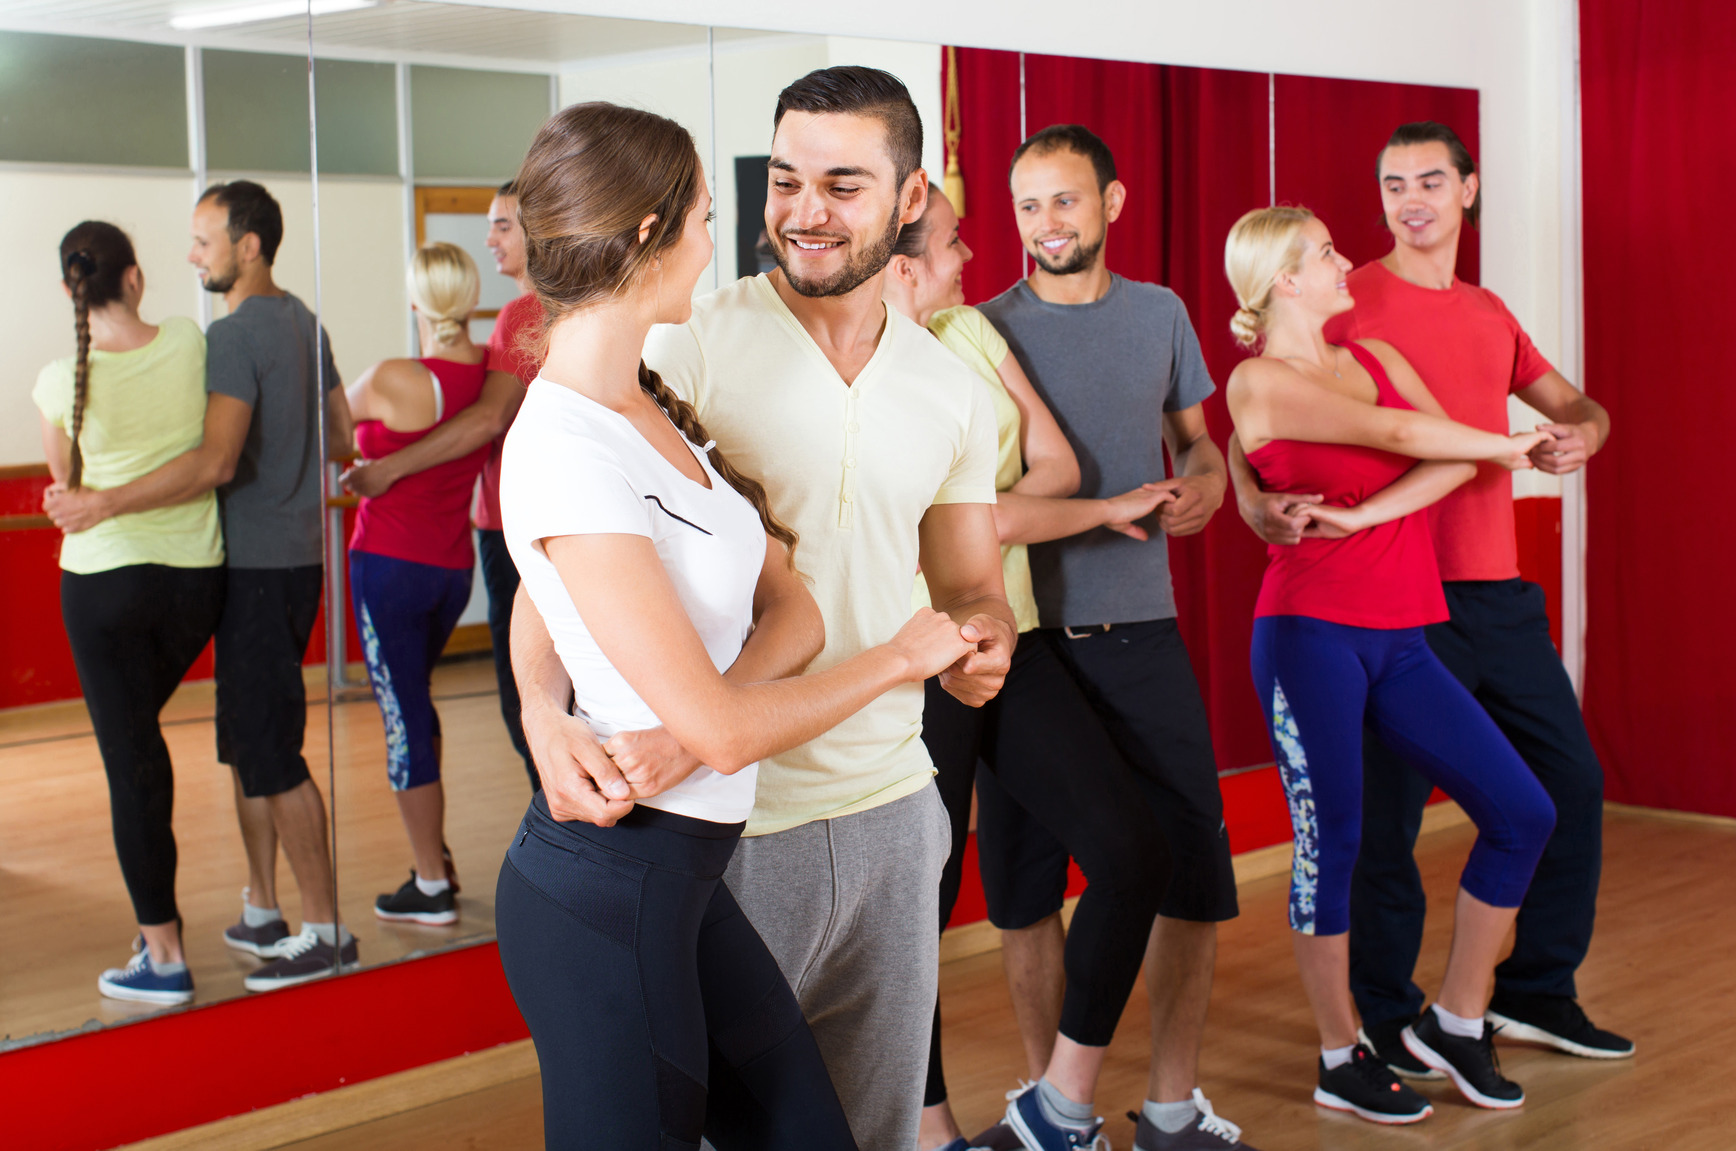 Learn to Dance at Group Dance Classes